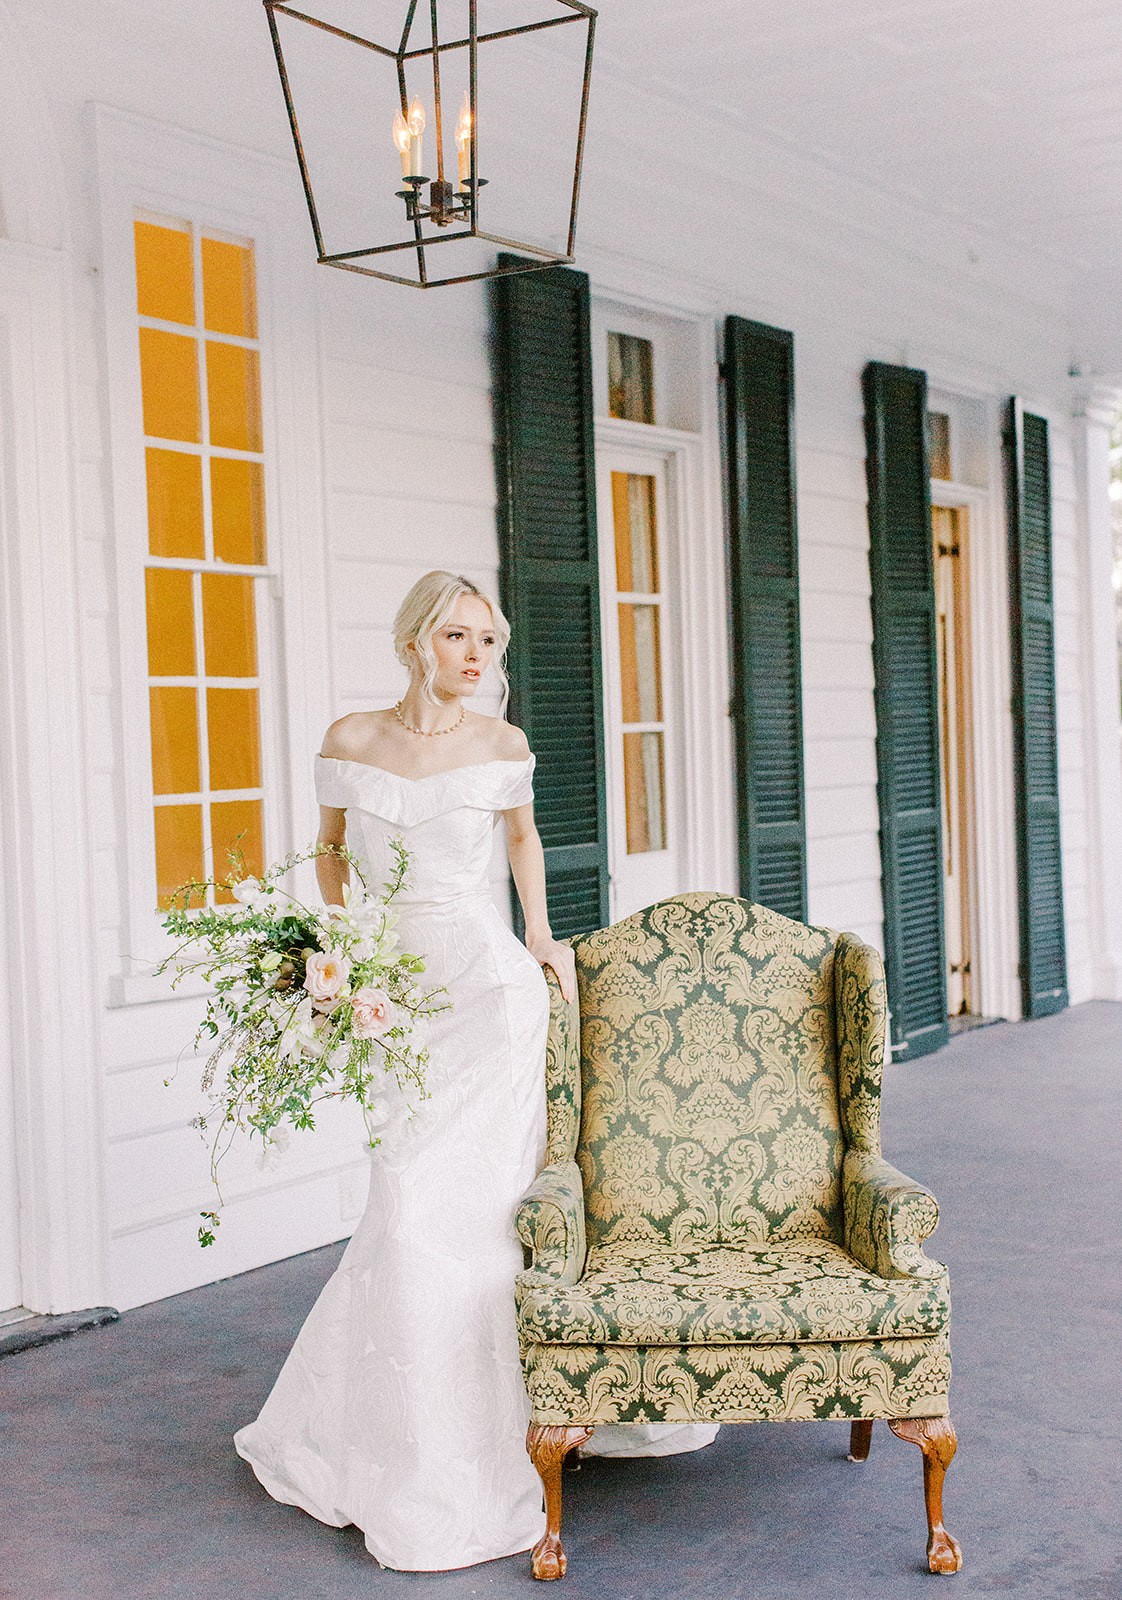 6 Different Wedding Dresses For Your Personality Type